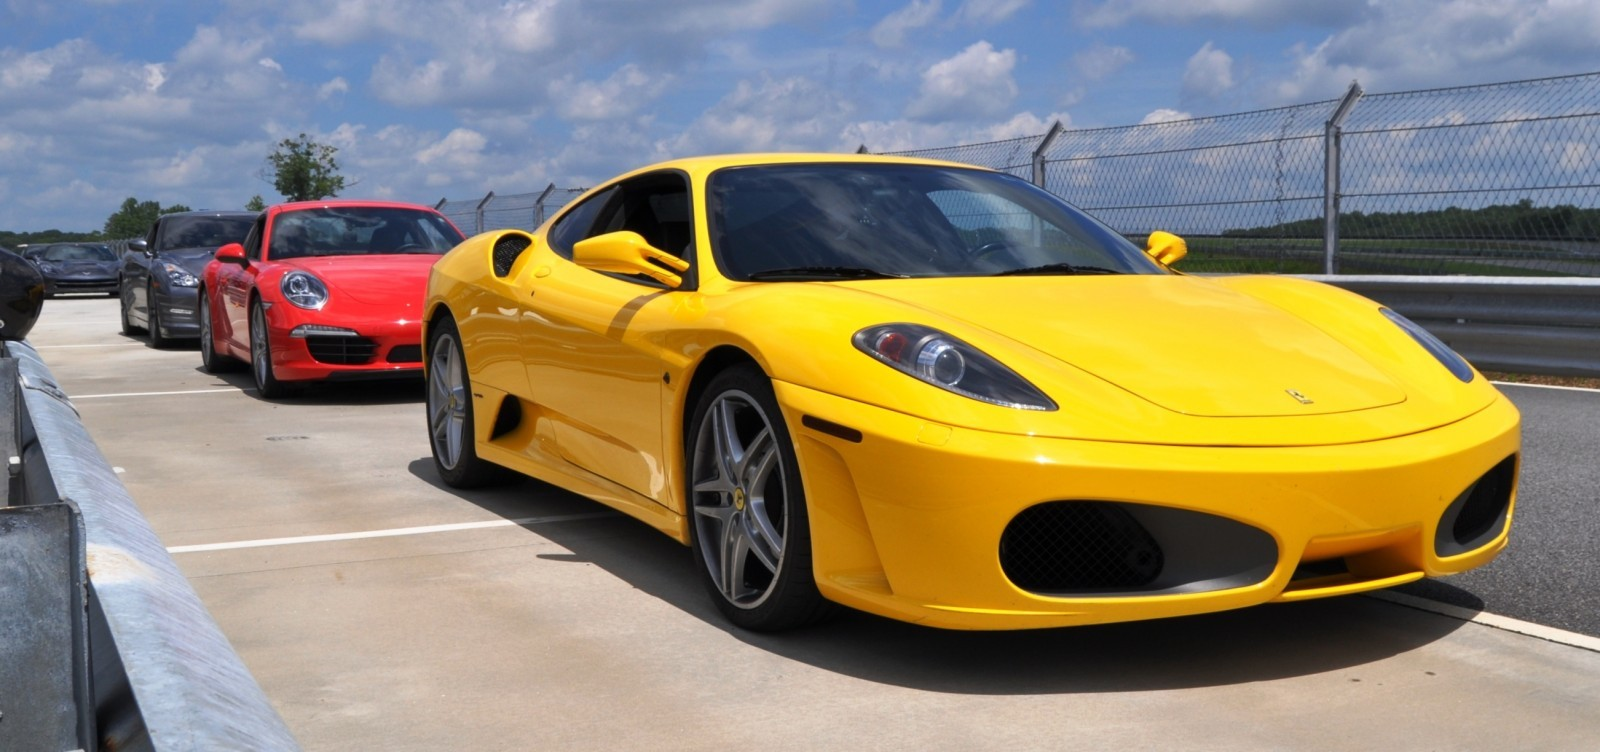 Beating the Supercar Paradox - 2007 Ferrari F430 at Velocity Motorsports Supercar Track Drive 22